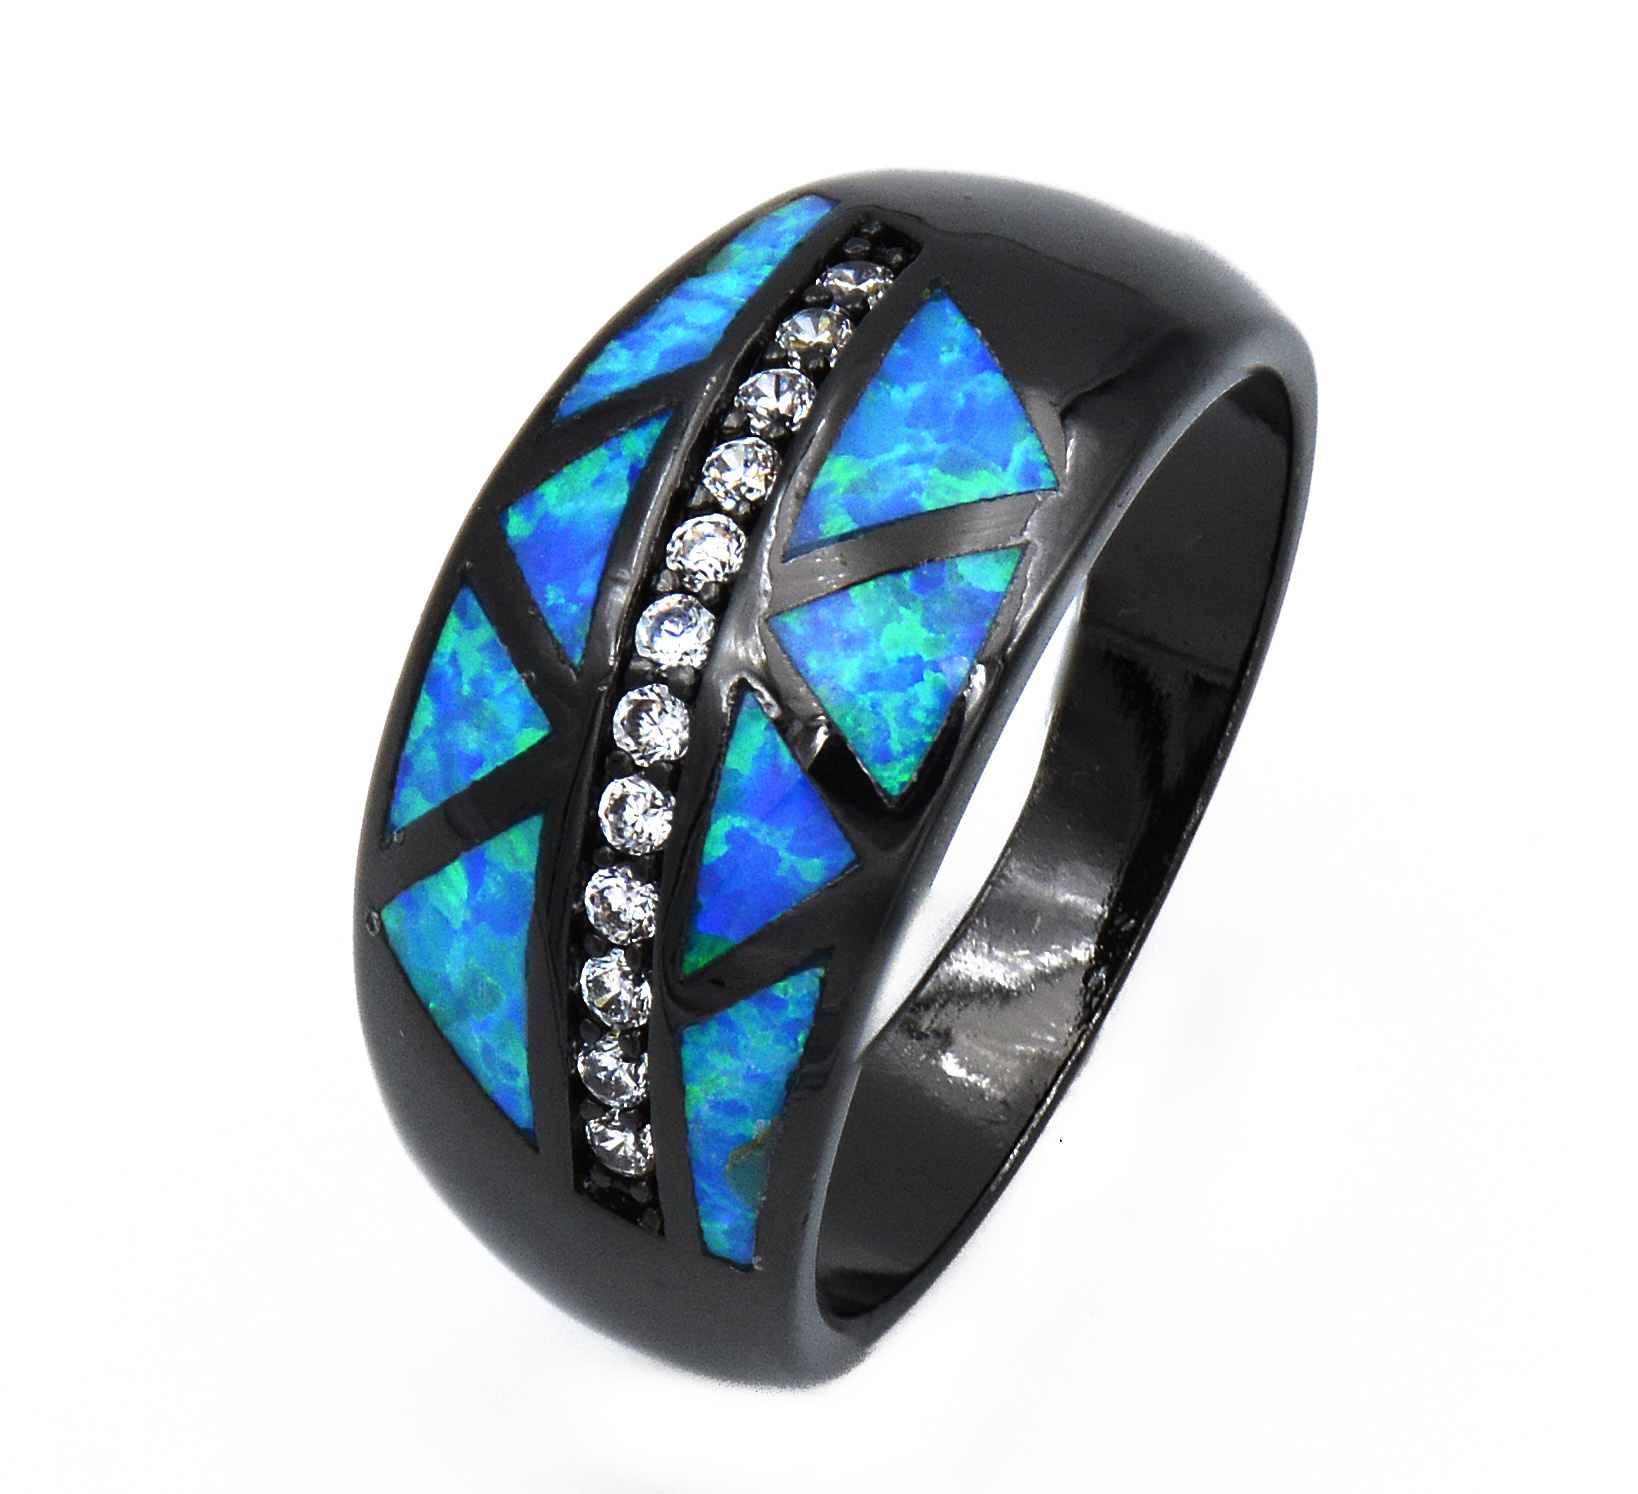 JZ0170 New Arrival Real Black Gold Filled Blue Fire Opal